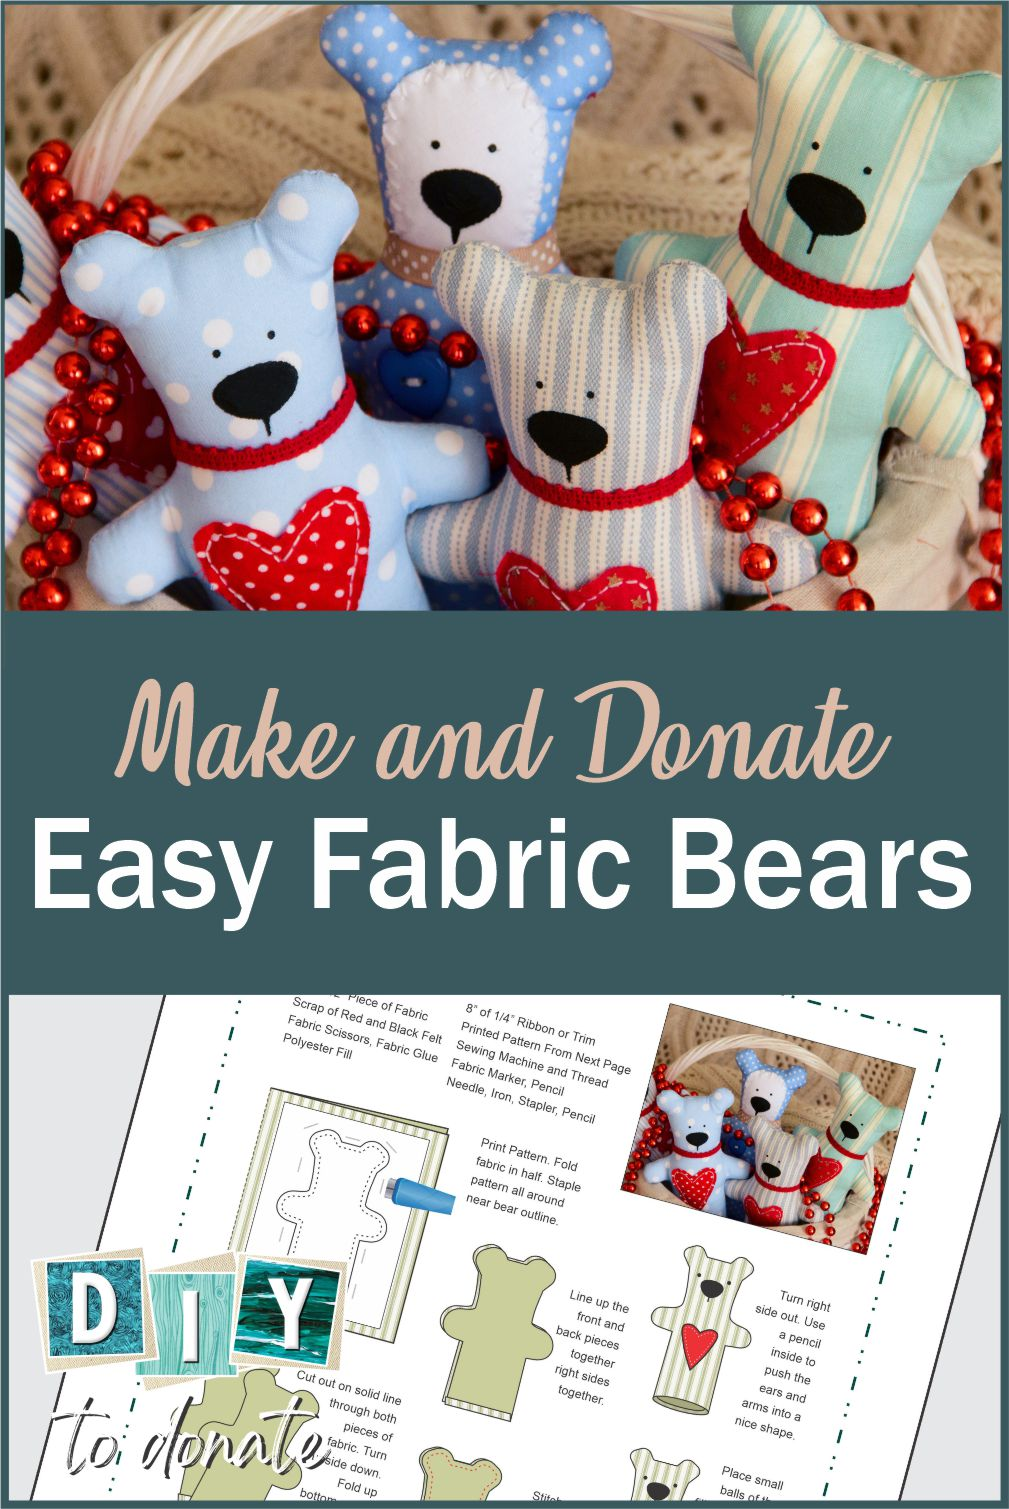 Kids can make super easy handmade bears to donate. Get our pattern or SVG file free and found out where you can donate to children in need. #diytodonate #diy #printable #handmade #bear #handmadebear #giveback #donate #helpers #advocate #kids